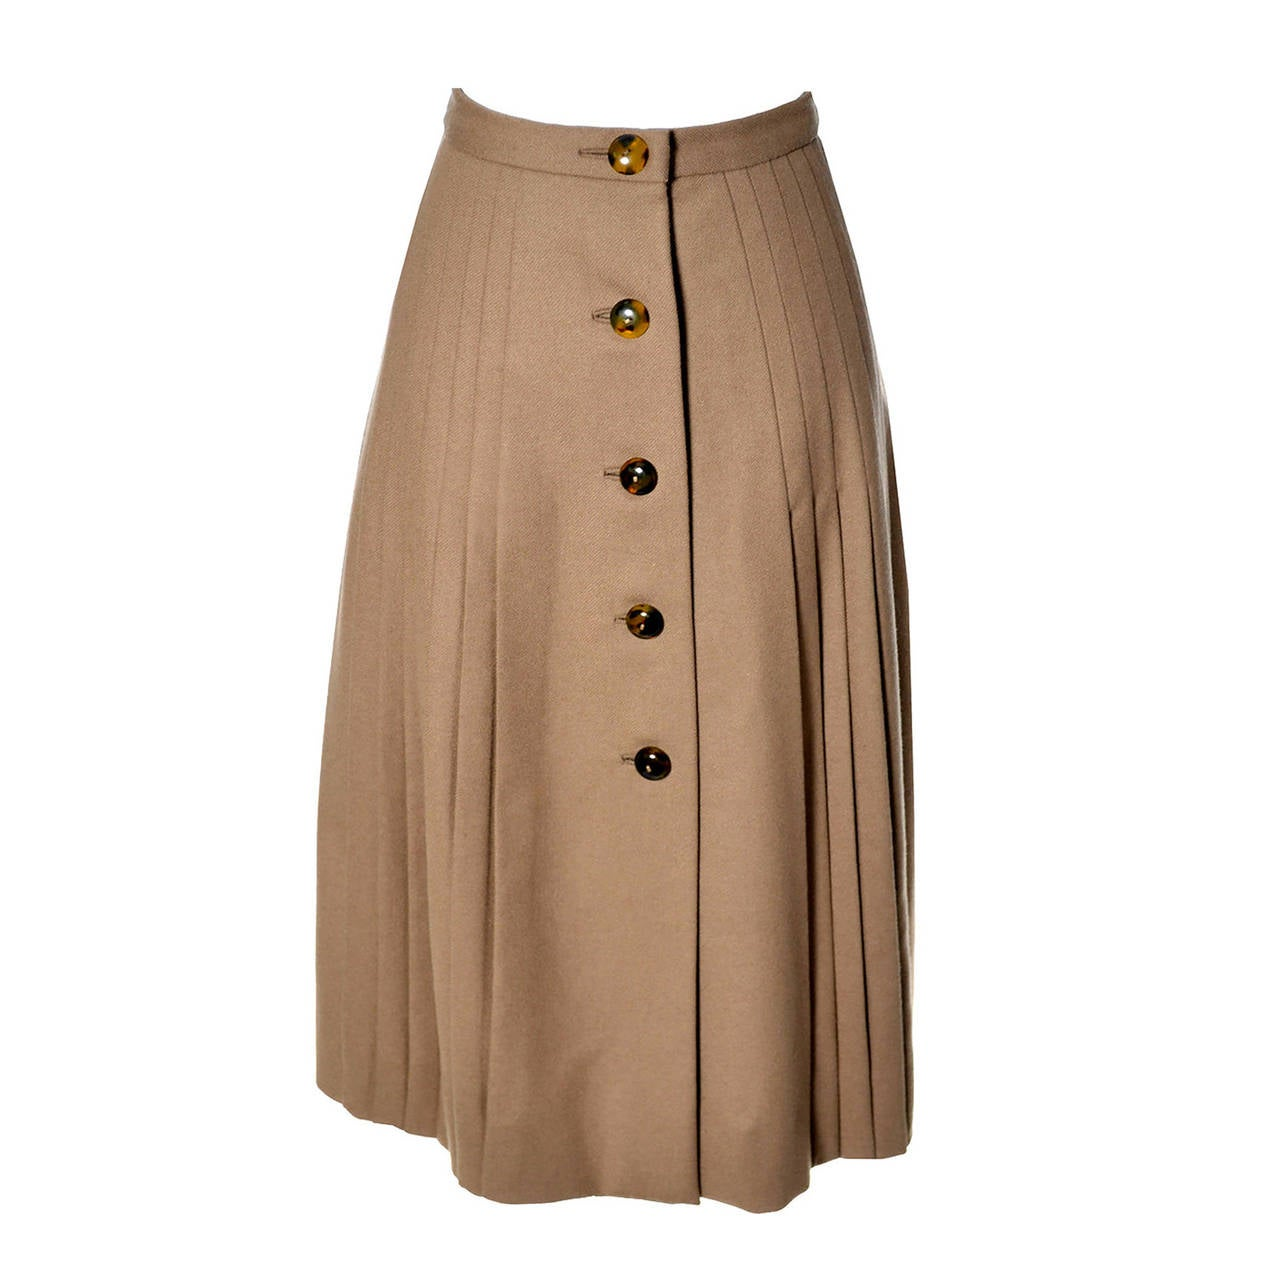 Valentino Vintage Skirt Older Label Boutique Camel Wool 1960s